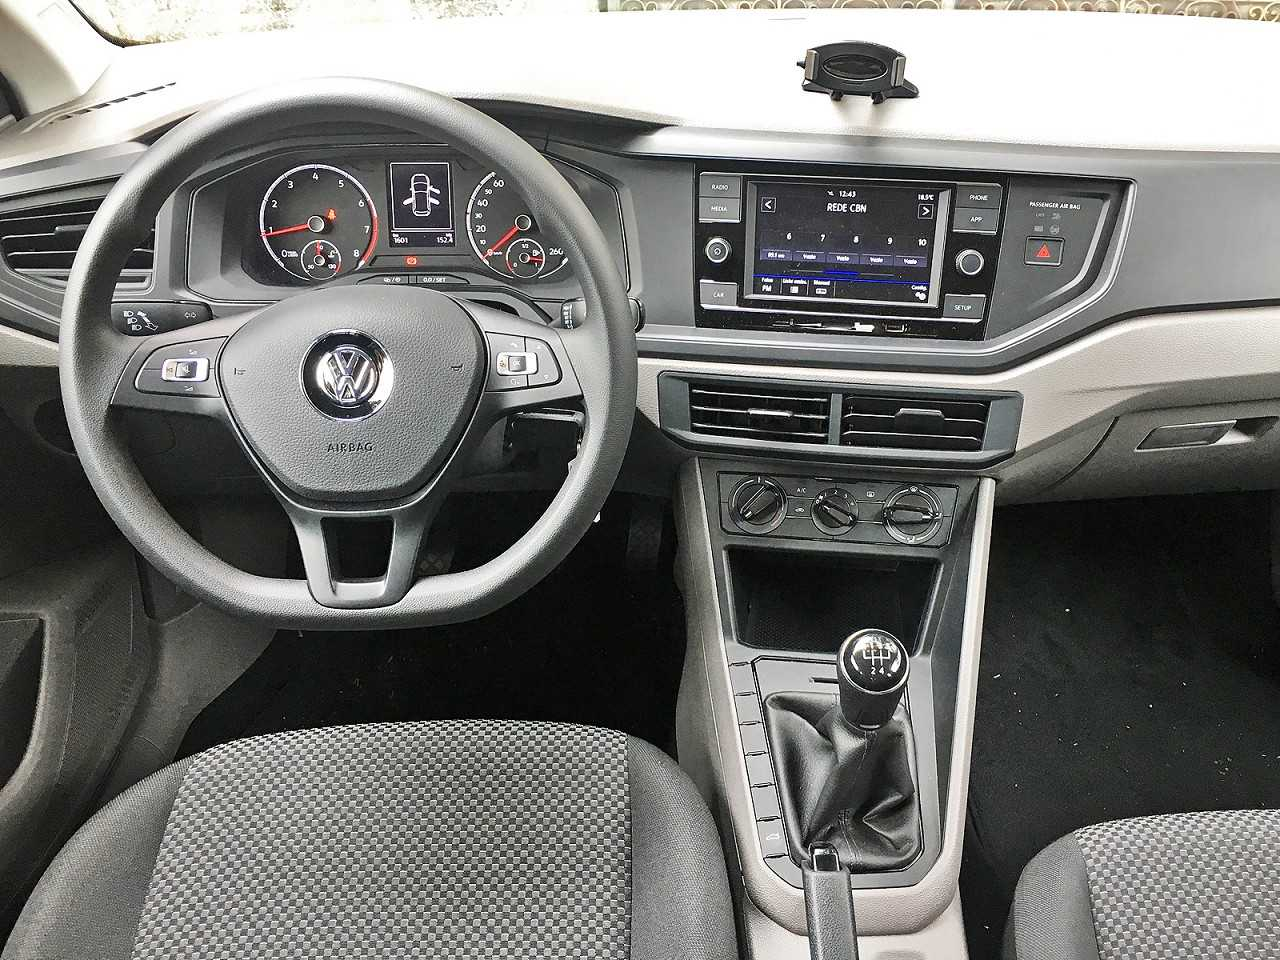 Volkswagen Polo 2018 - painel